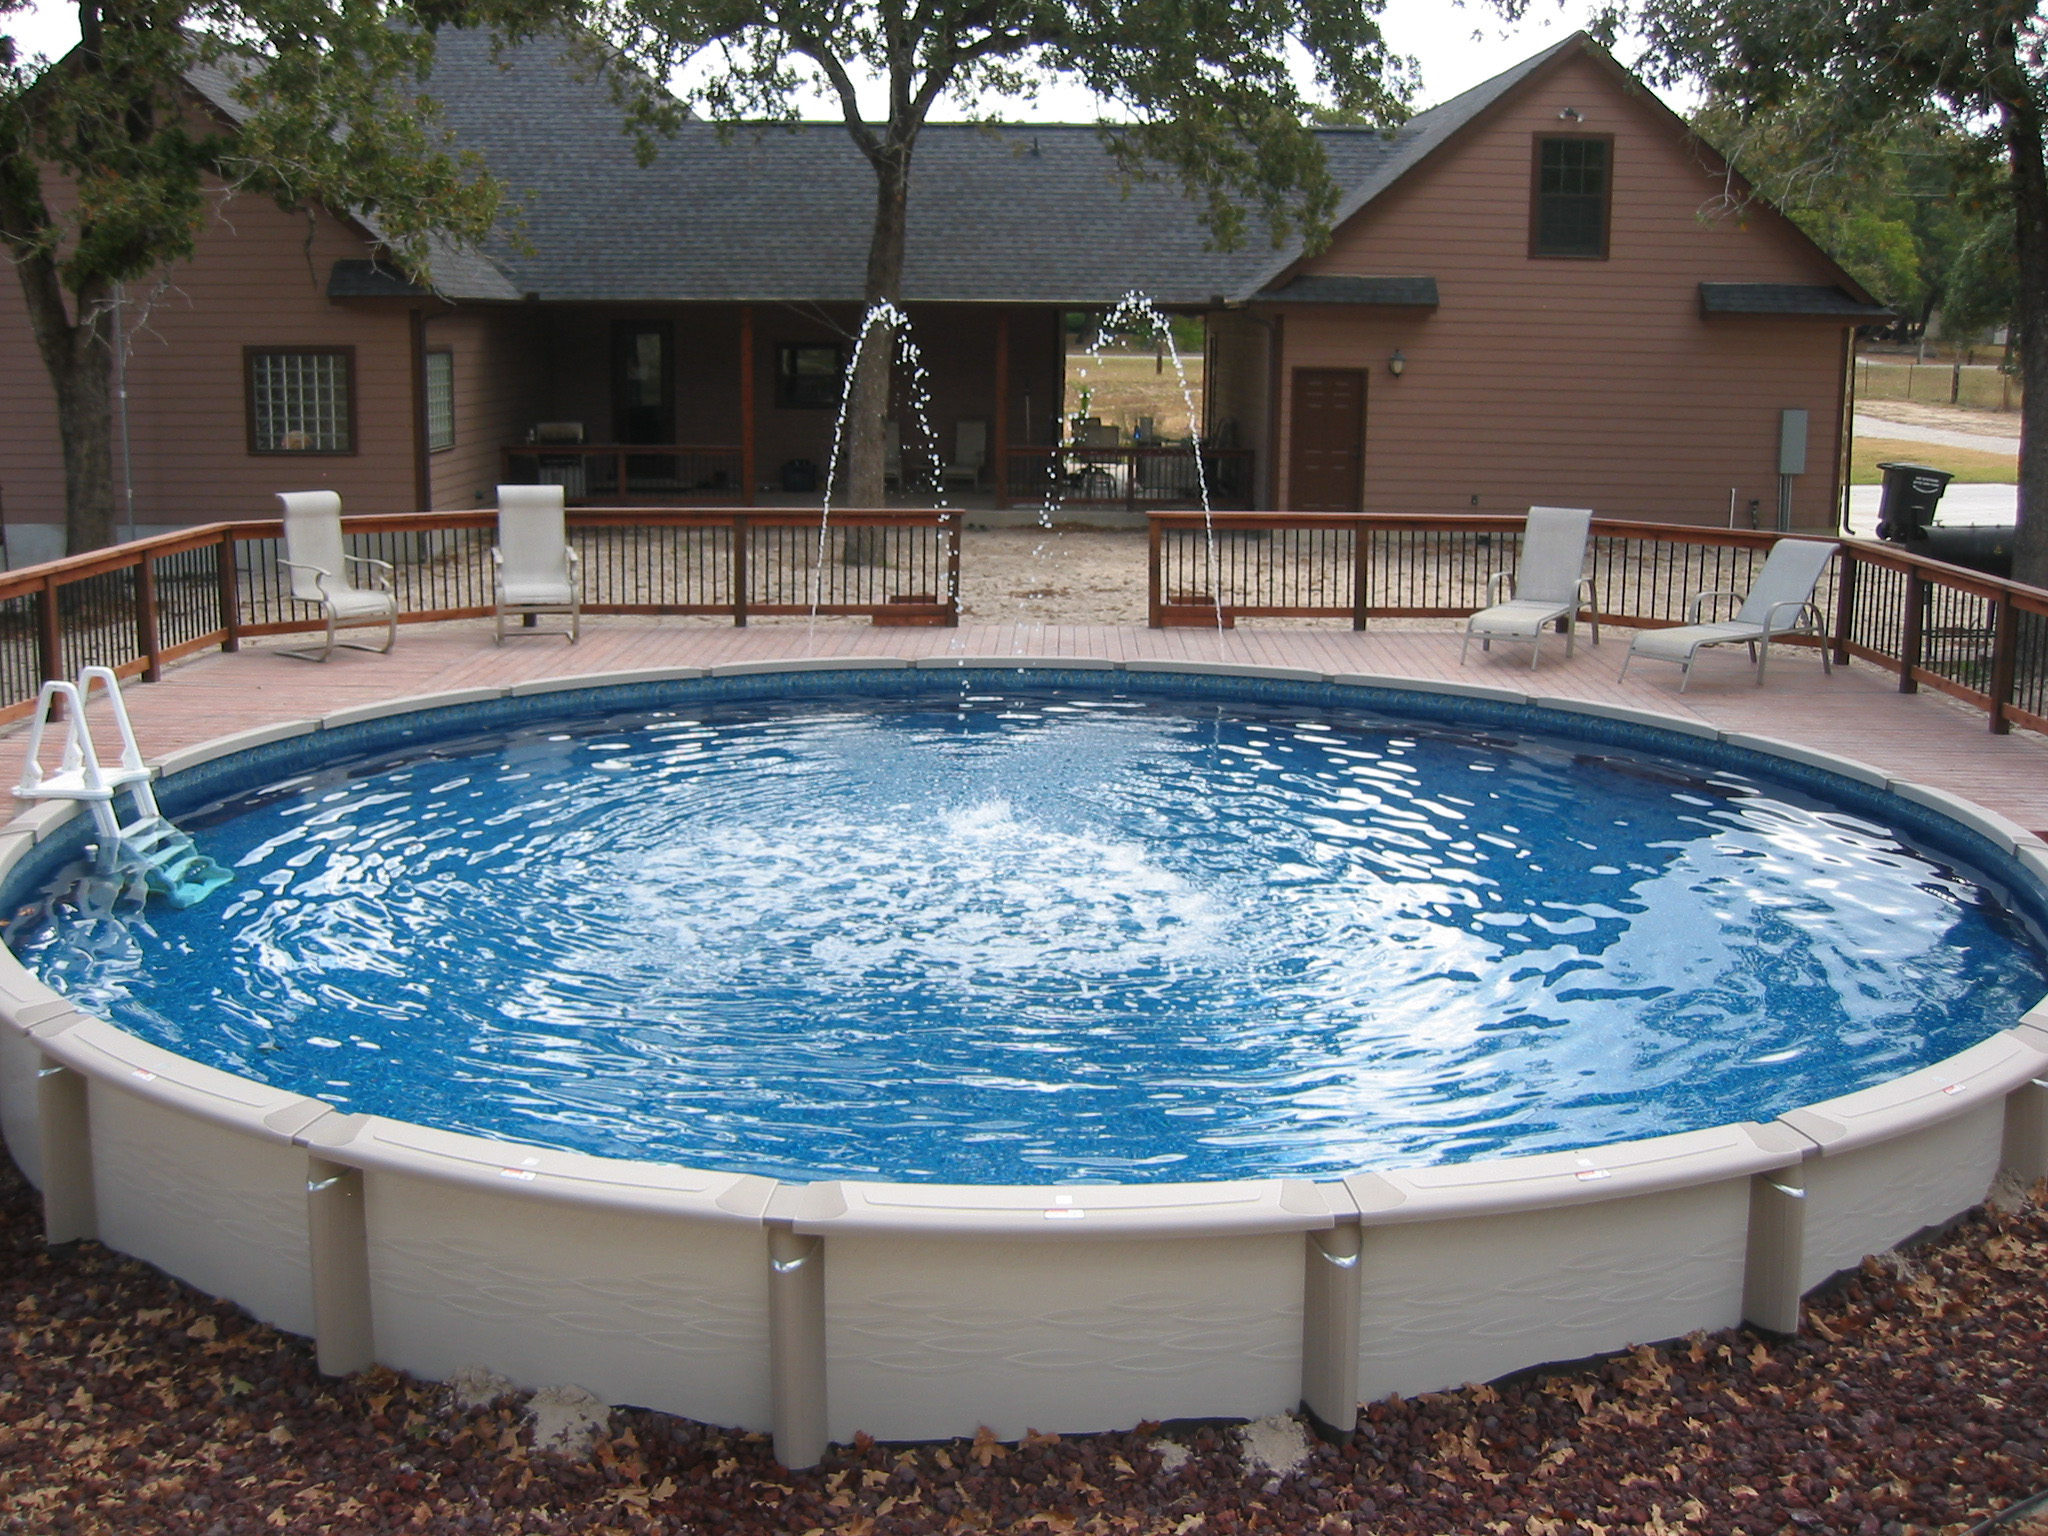 Best above ground swimming pools design on vine for Above ground pool designs